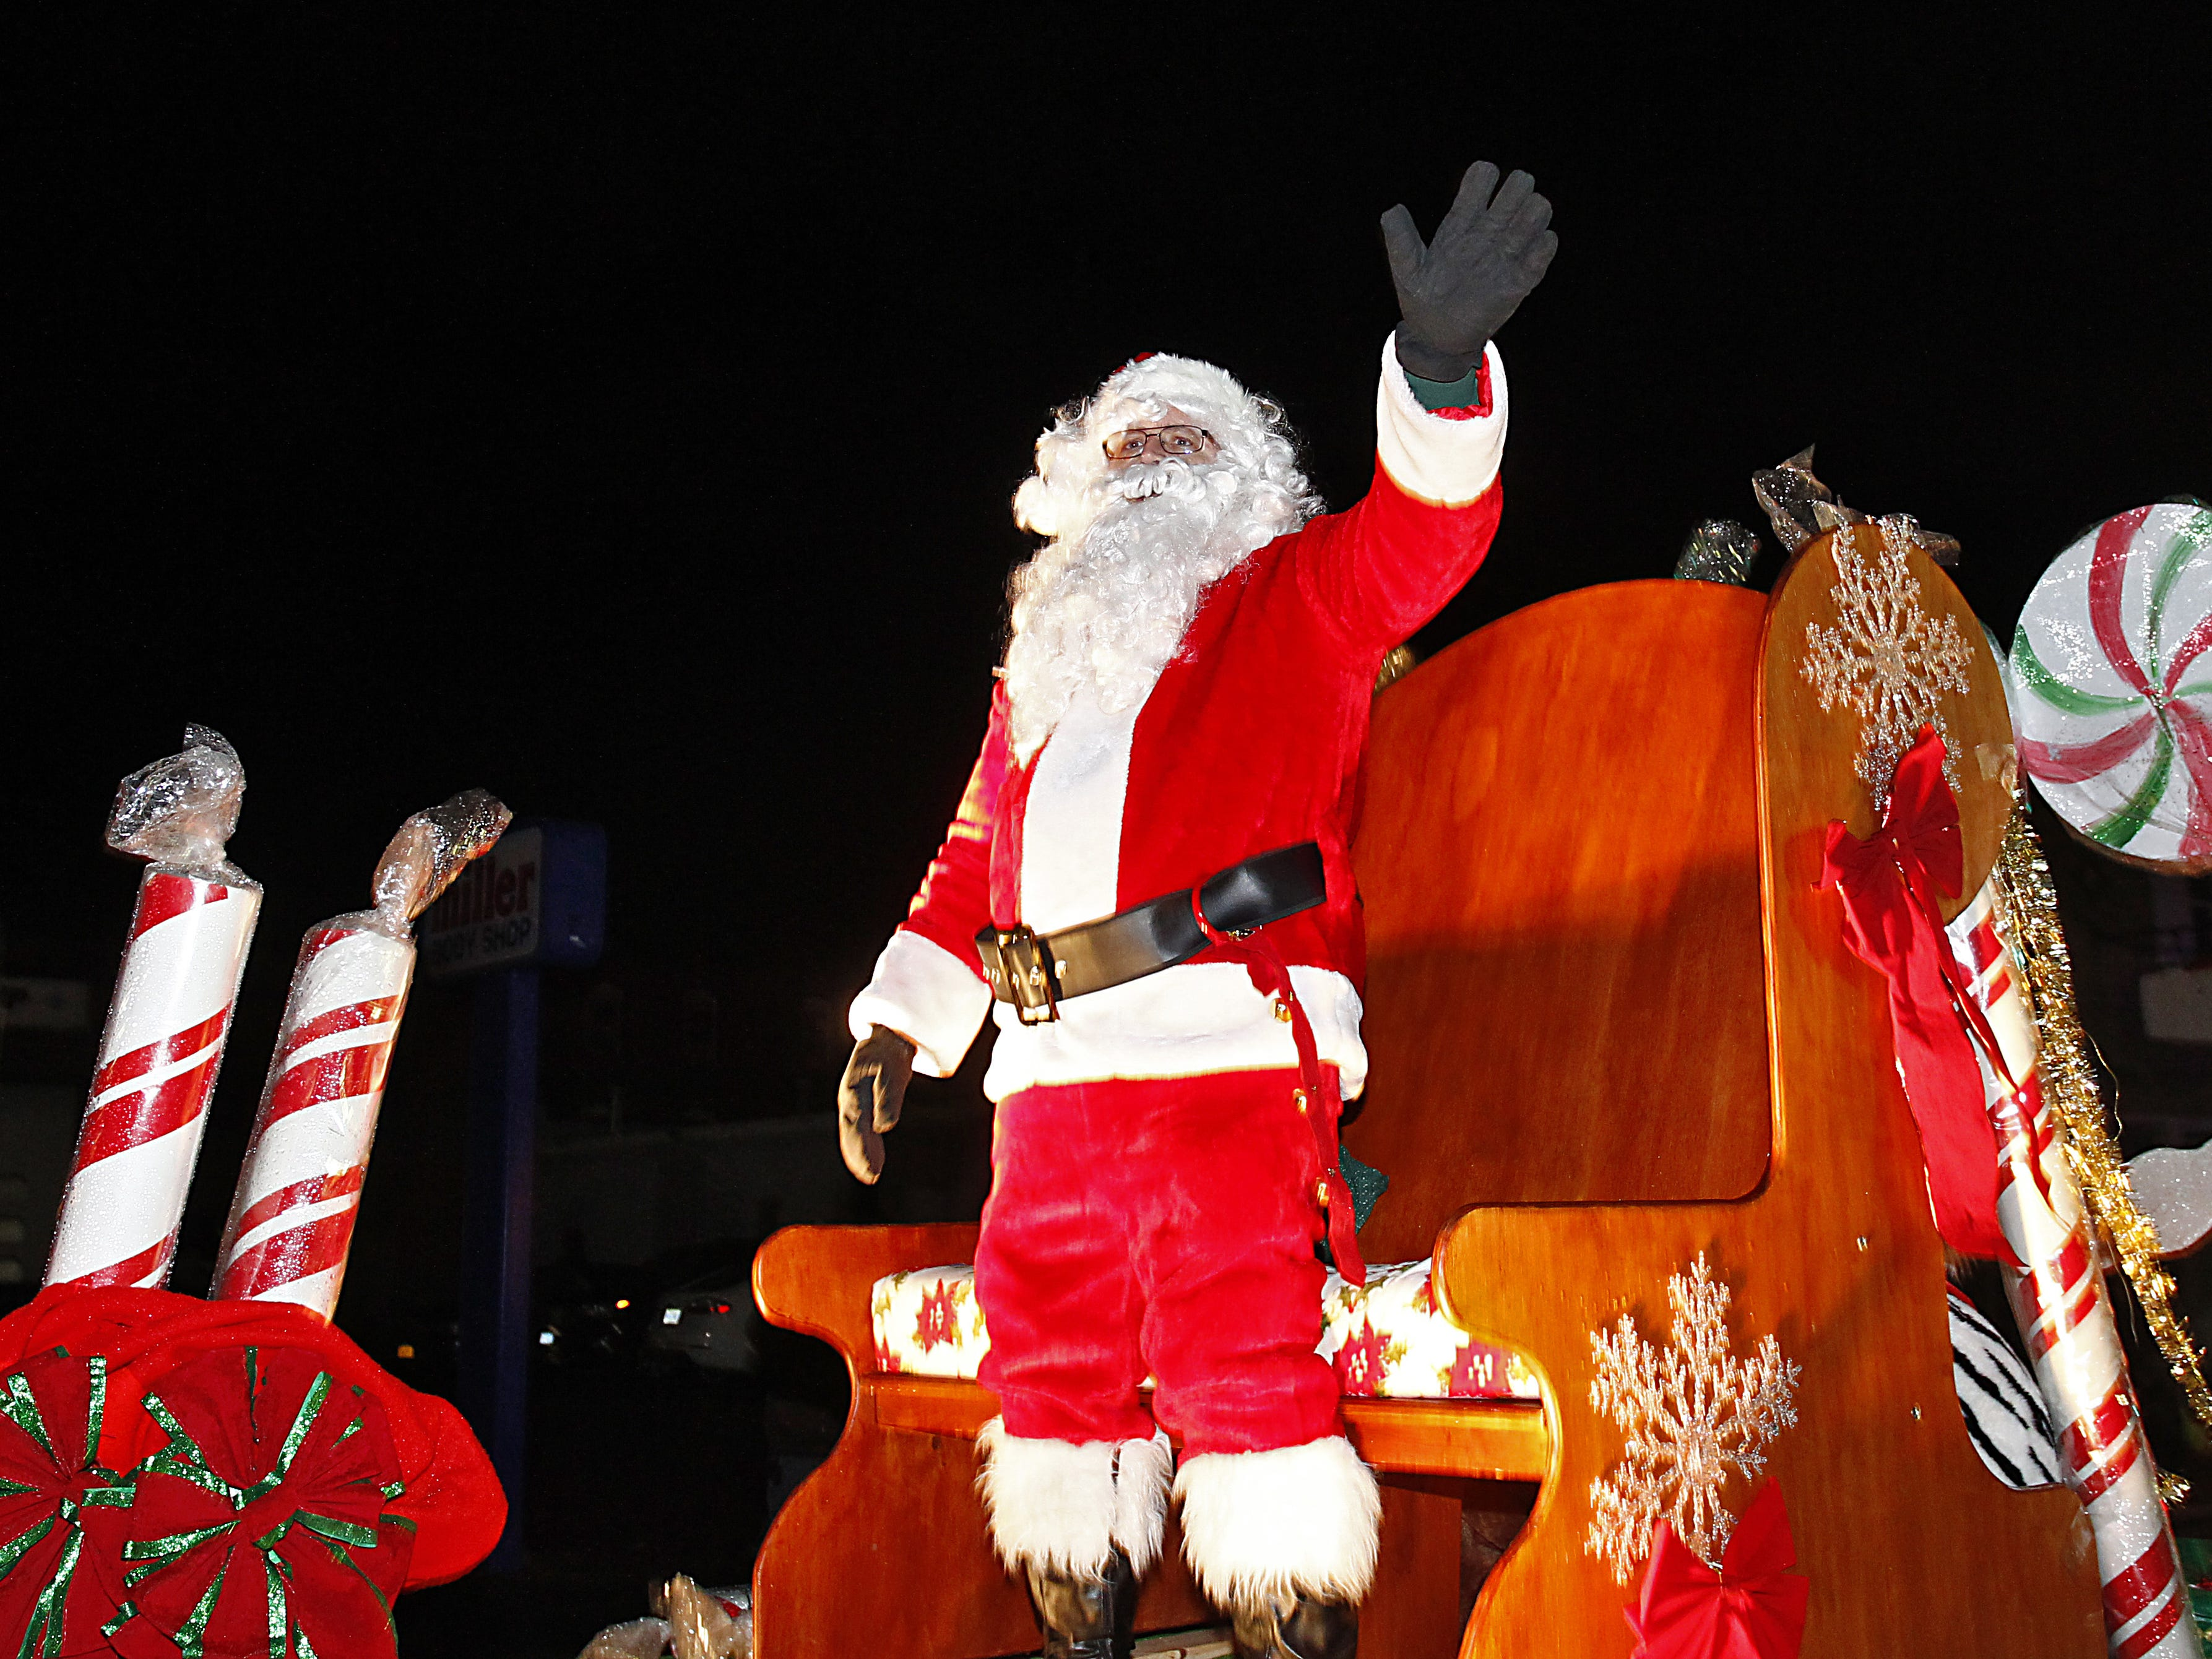 Santa waves to the crowd during the Johnson City Business and Professional Women's Holiday parade in downtown Johnson City on Dec. 3, 2015.